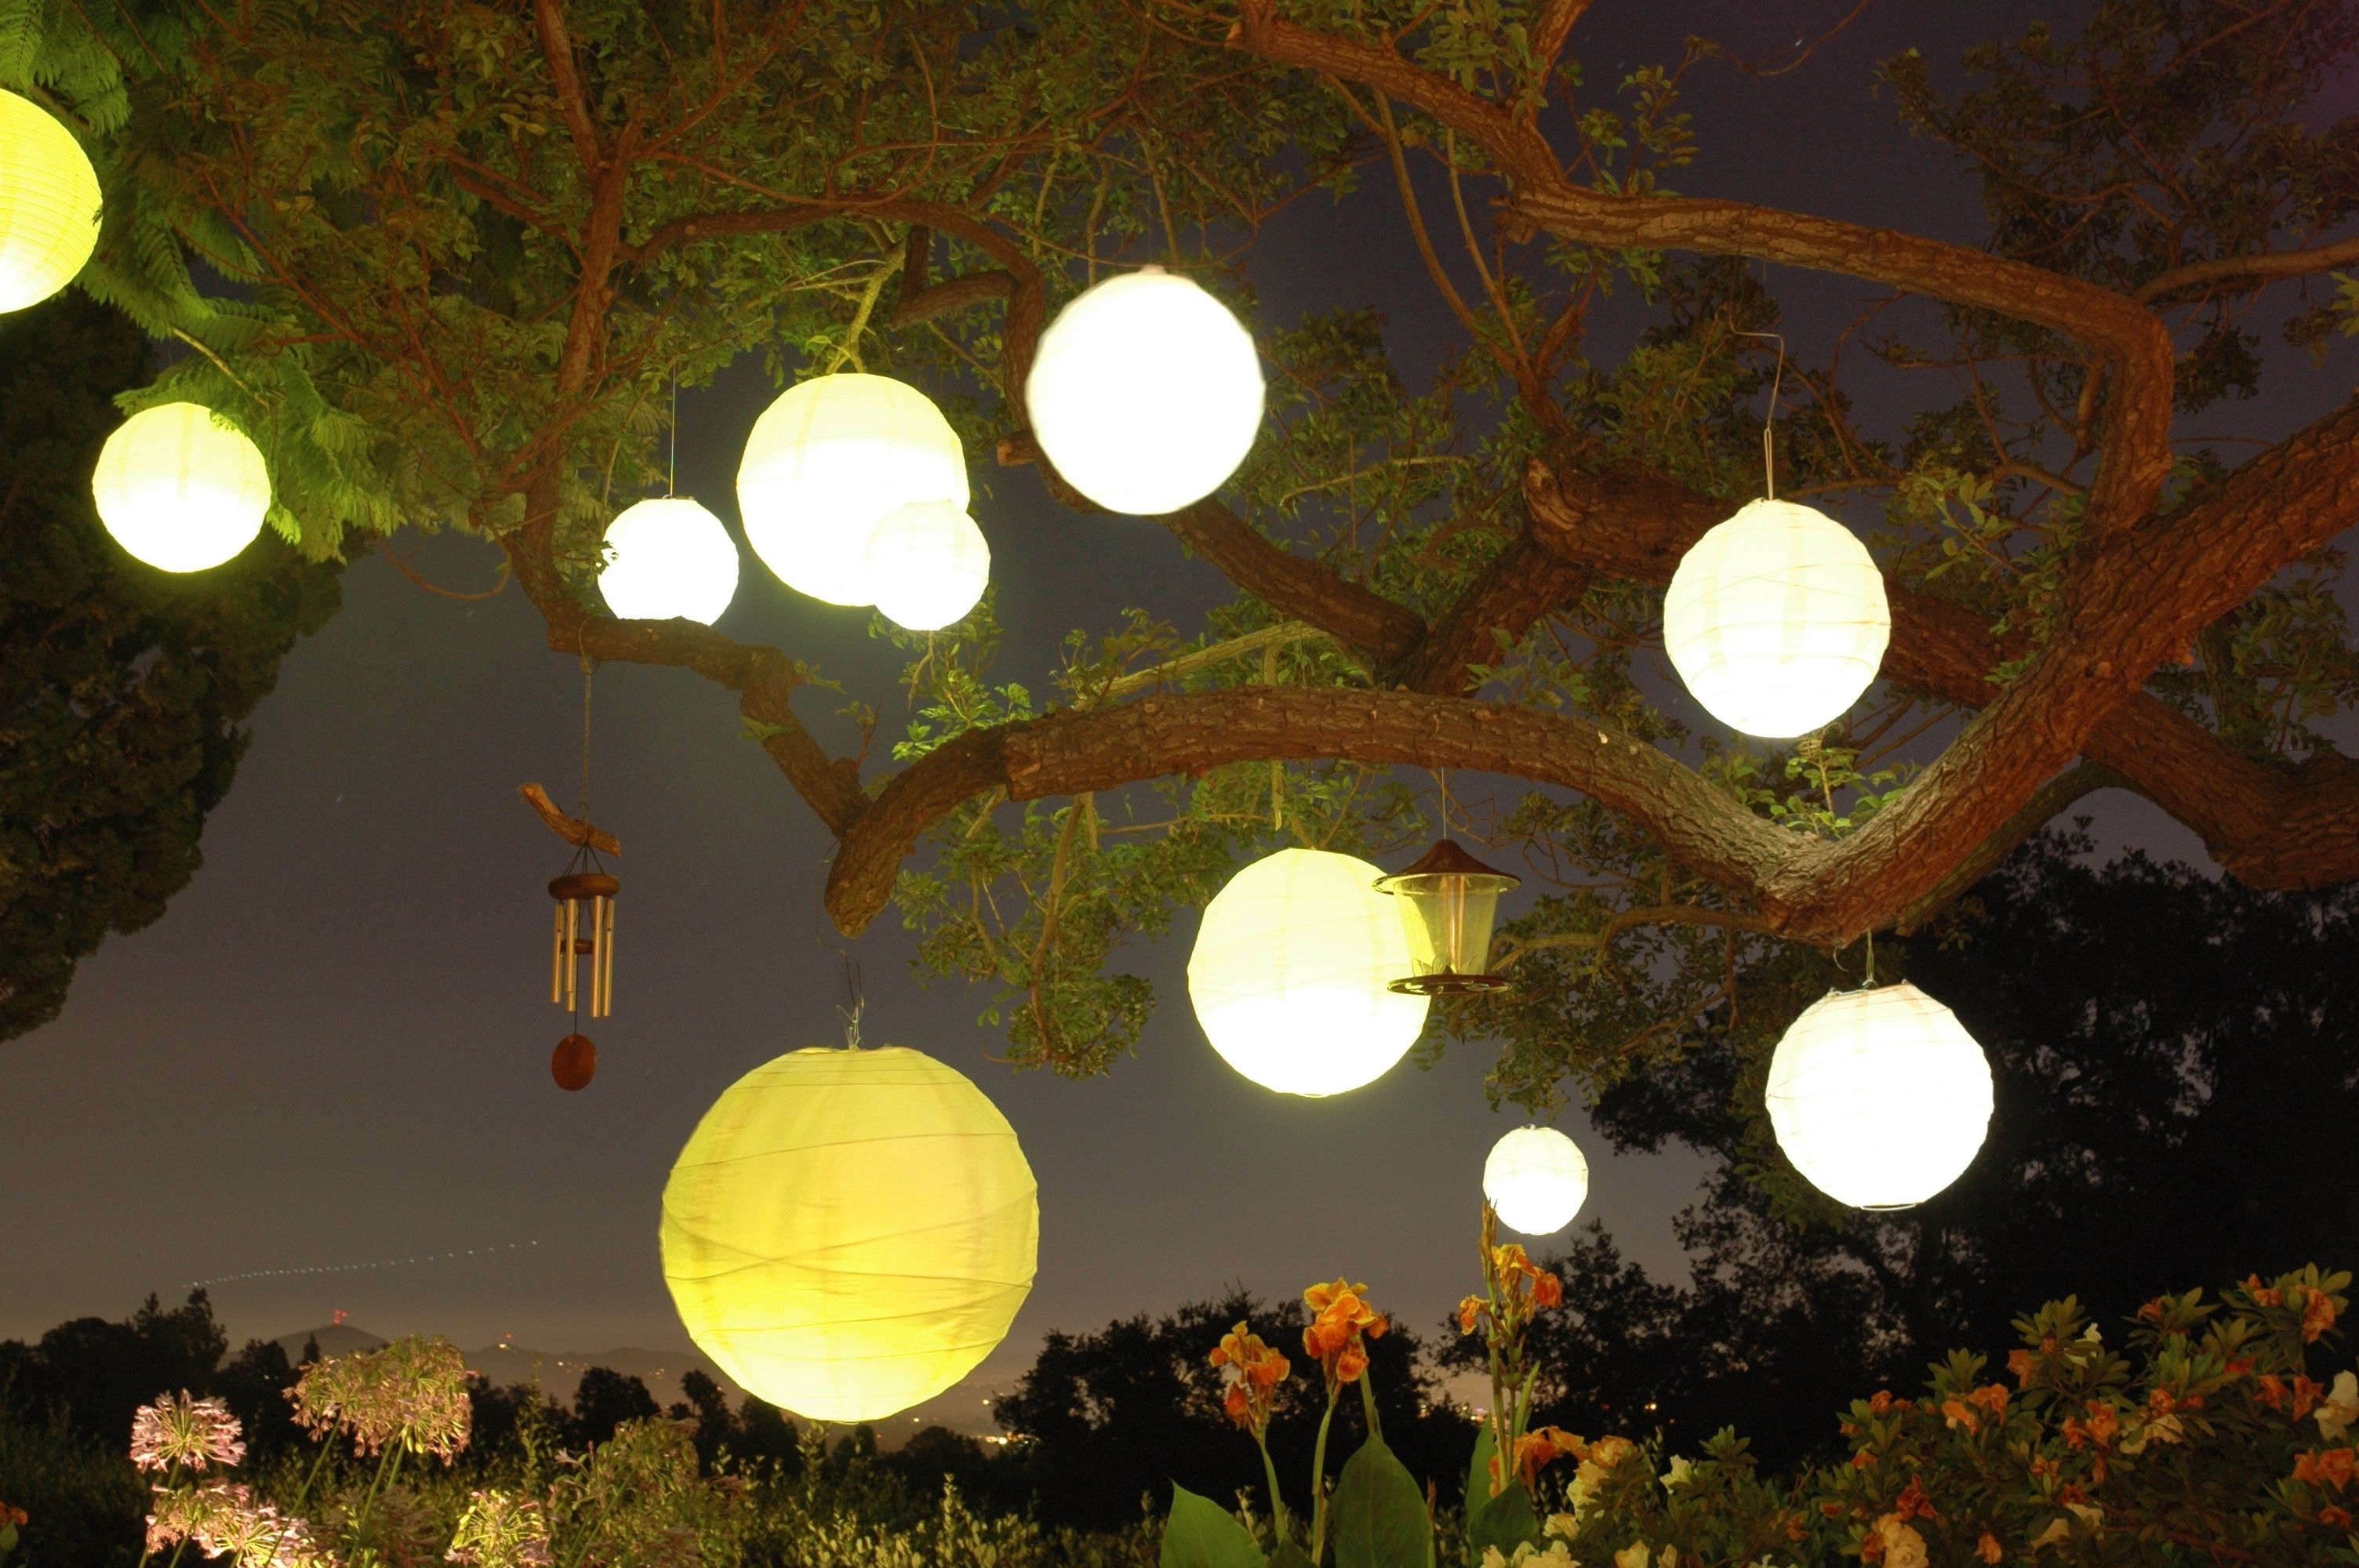 Outdoor Paper Lanterns With Regard To Current Divine Outdoor Lighting Via Paper Lanterns (View 14 of 20)